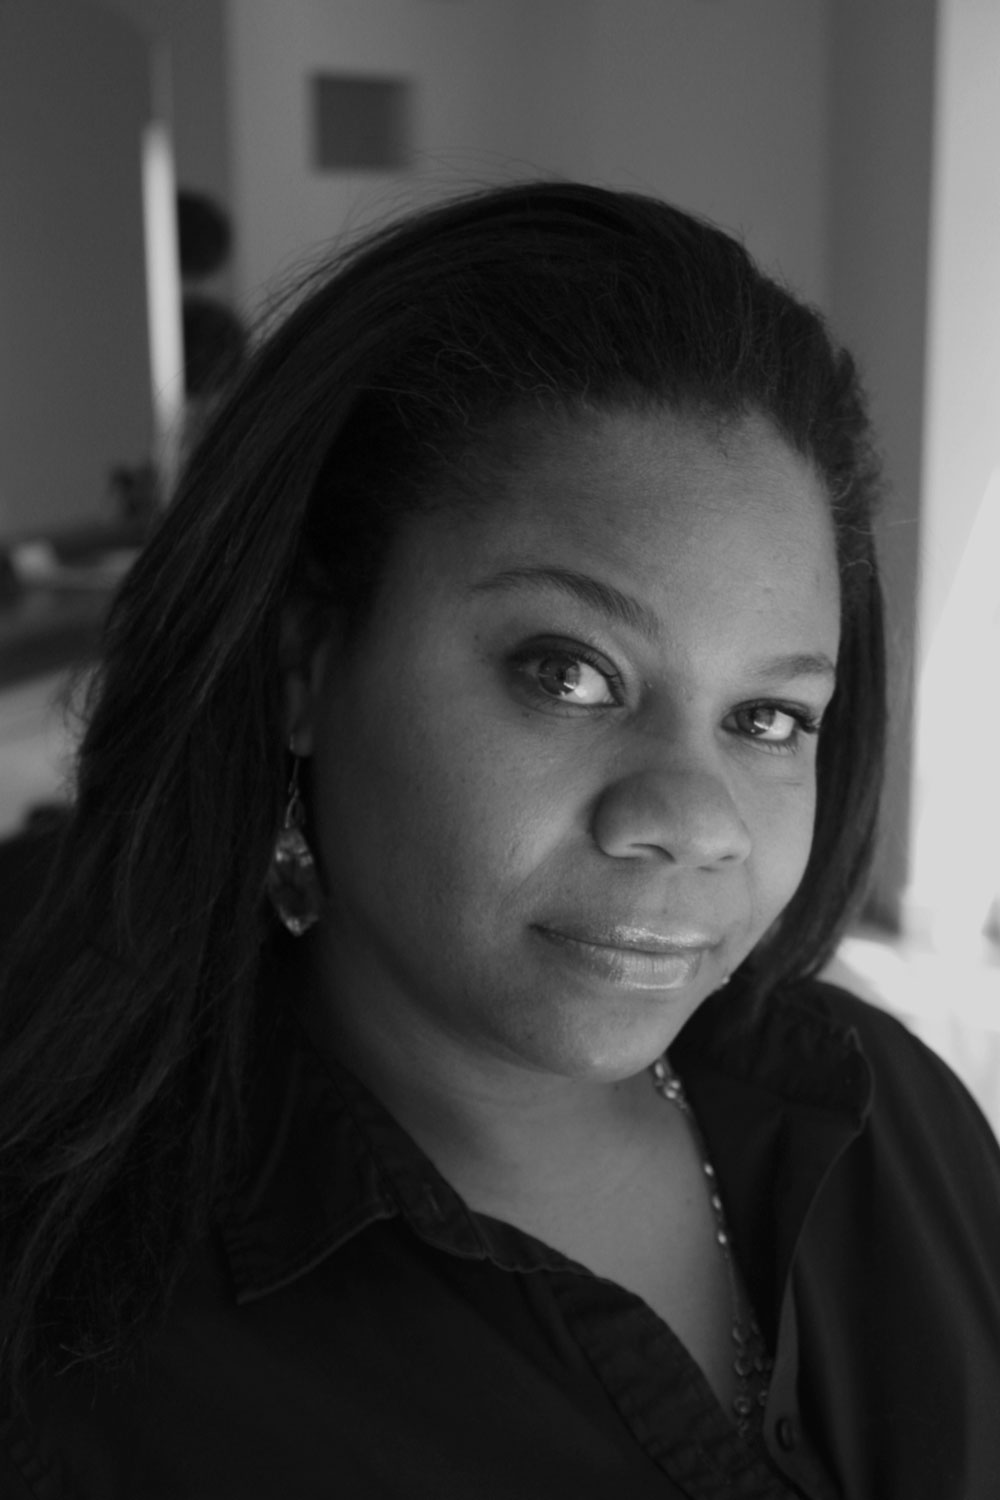 NYREE BUSBY - SENIOR - FULL BIO & PORTFOLIO